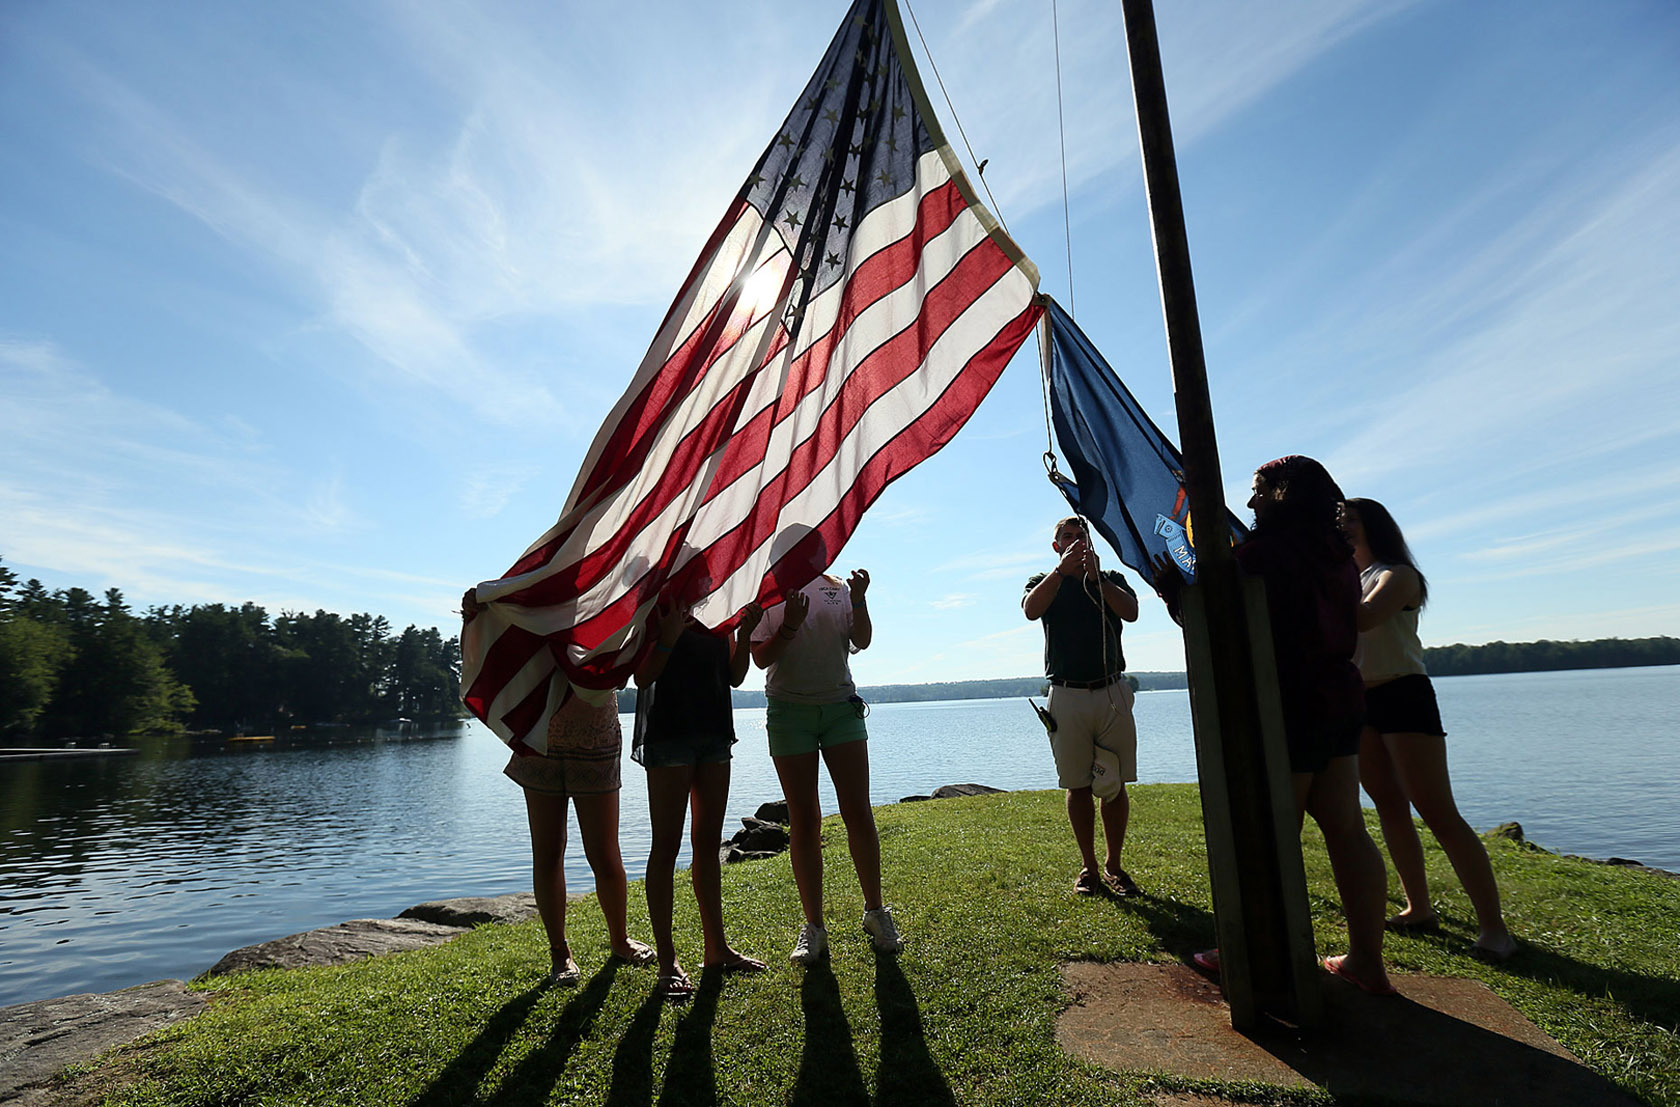 Old Glory is raised for the day at a YMCA Camp in Winthrop, Maine